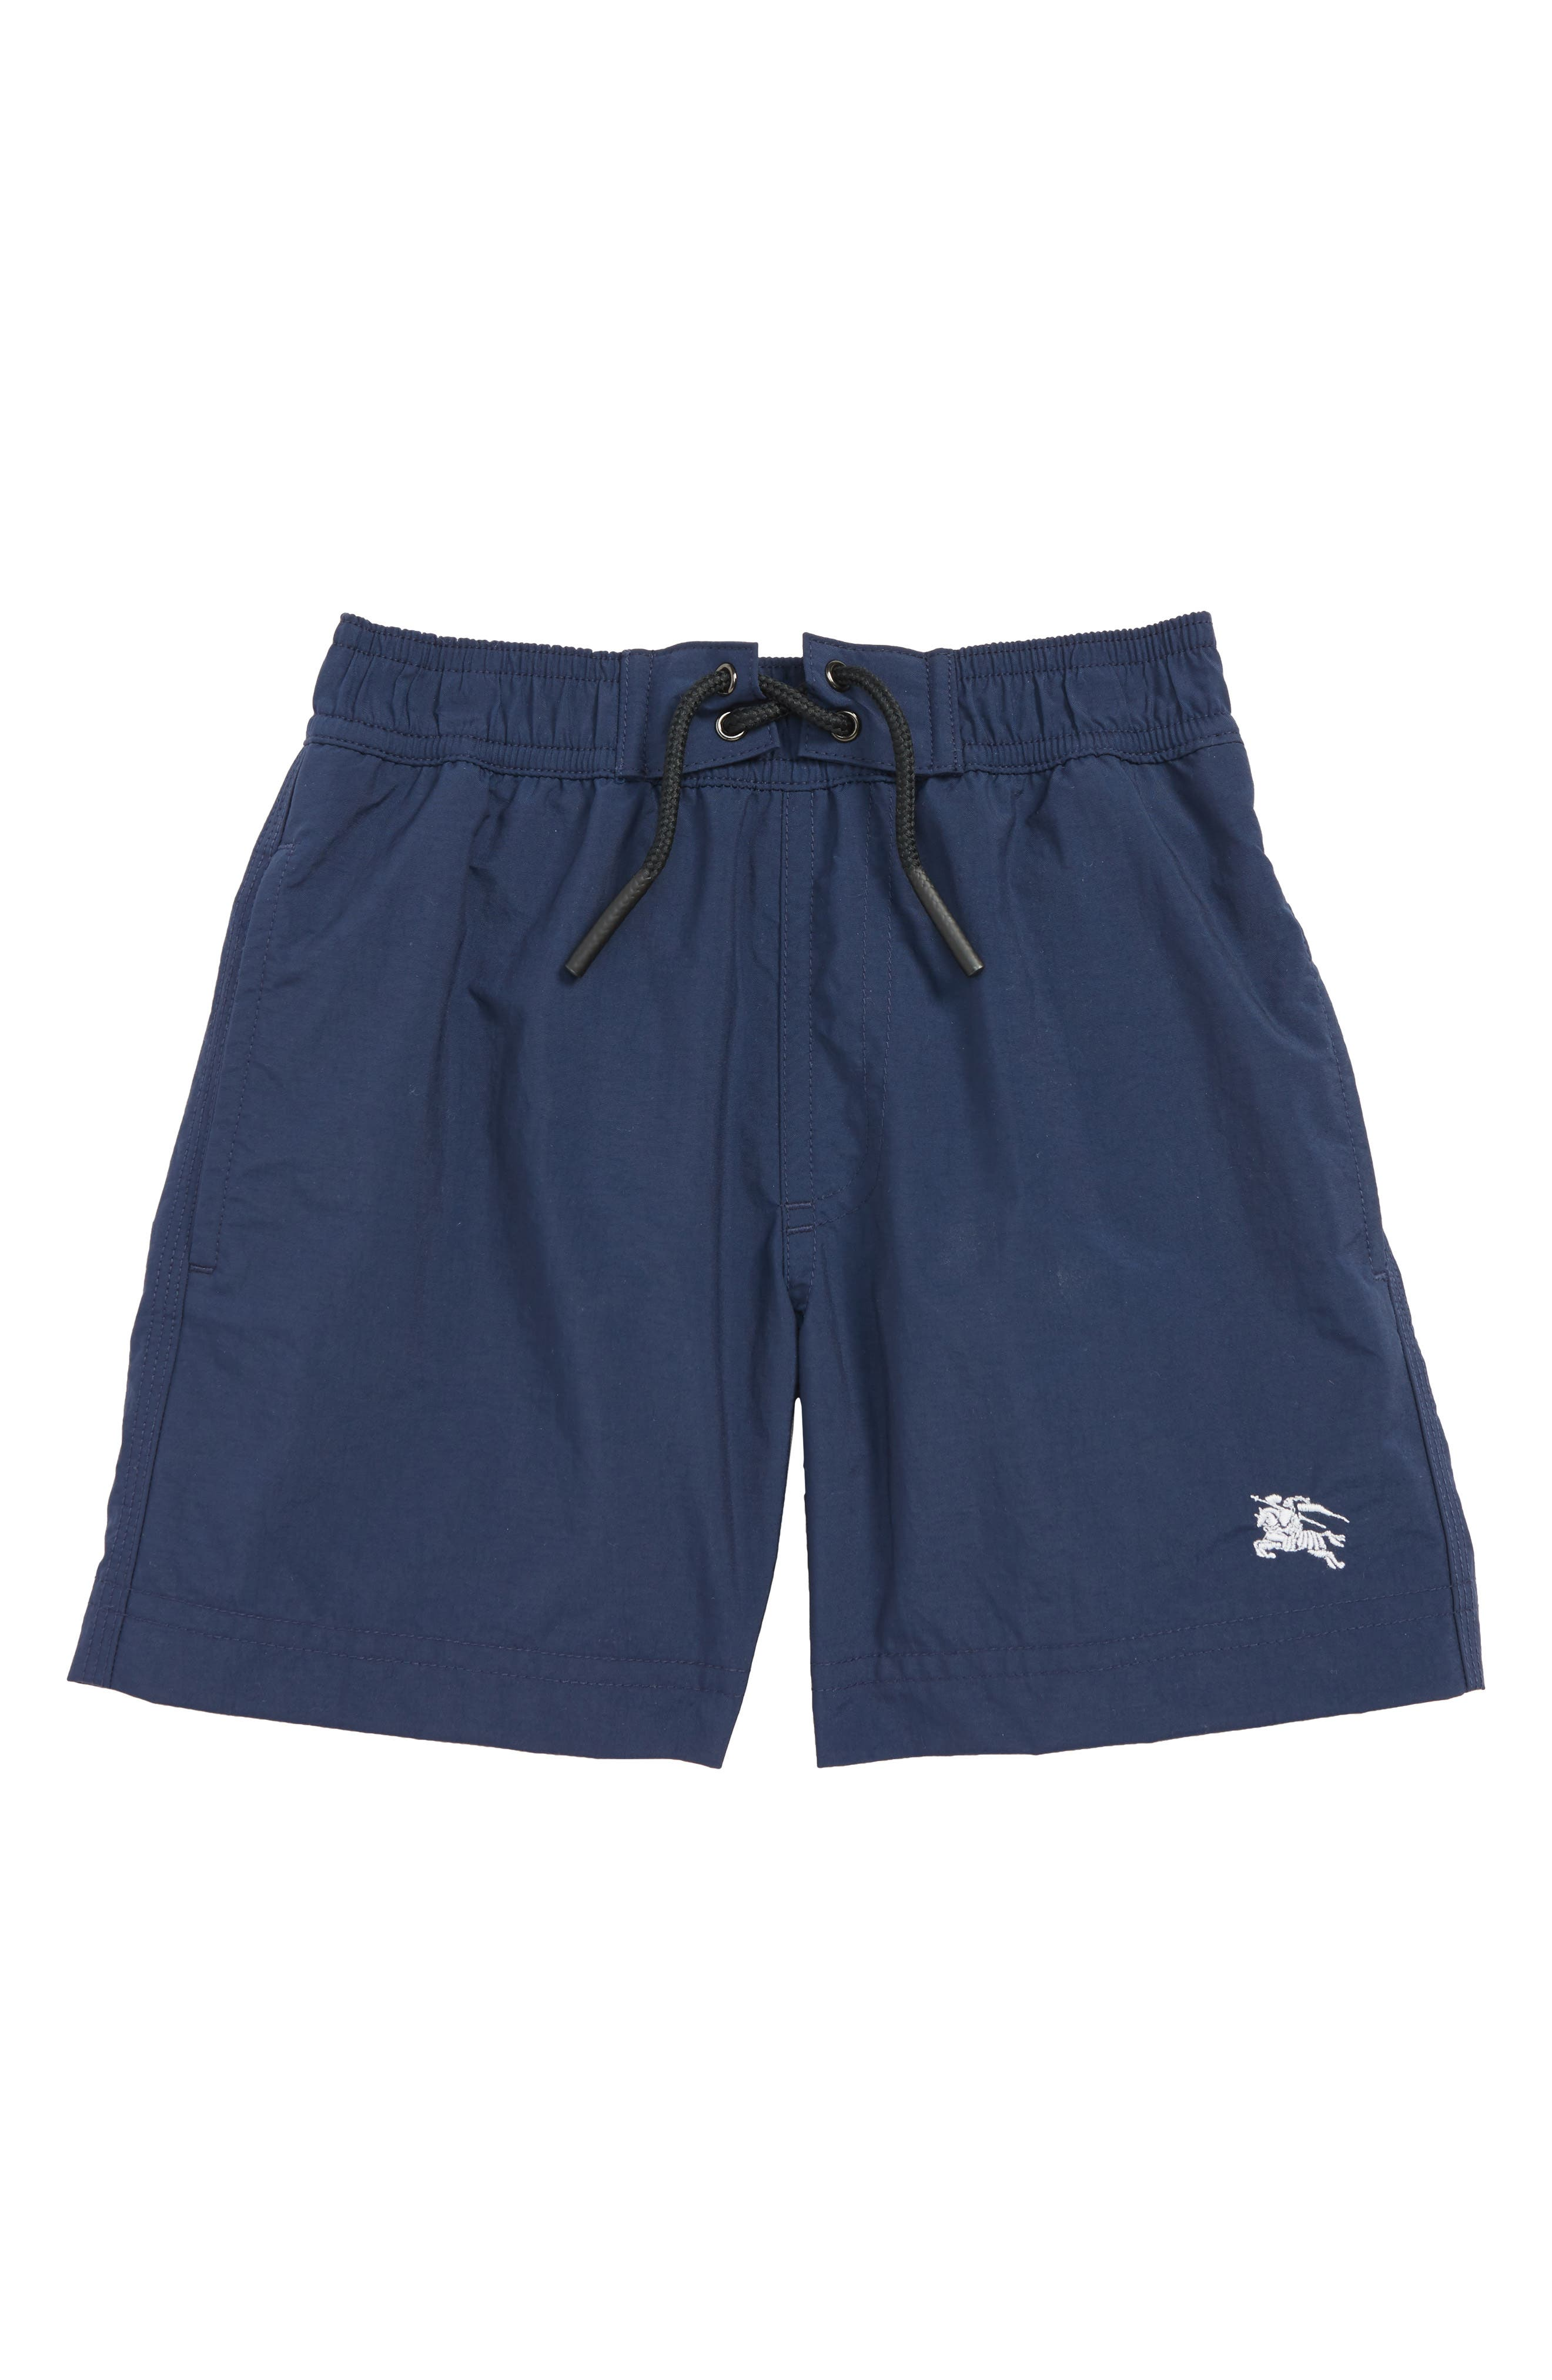 Galvin Swim Trunks,                             Main thumbnail 1, color,                             INDIGO